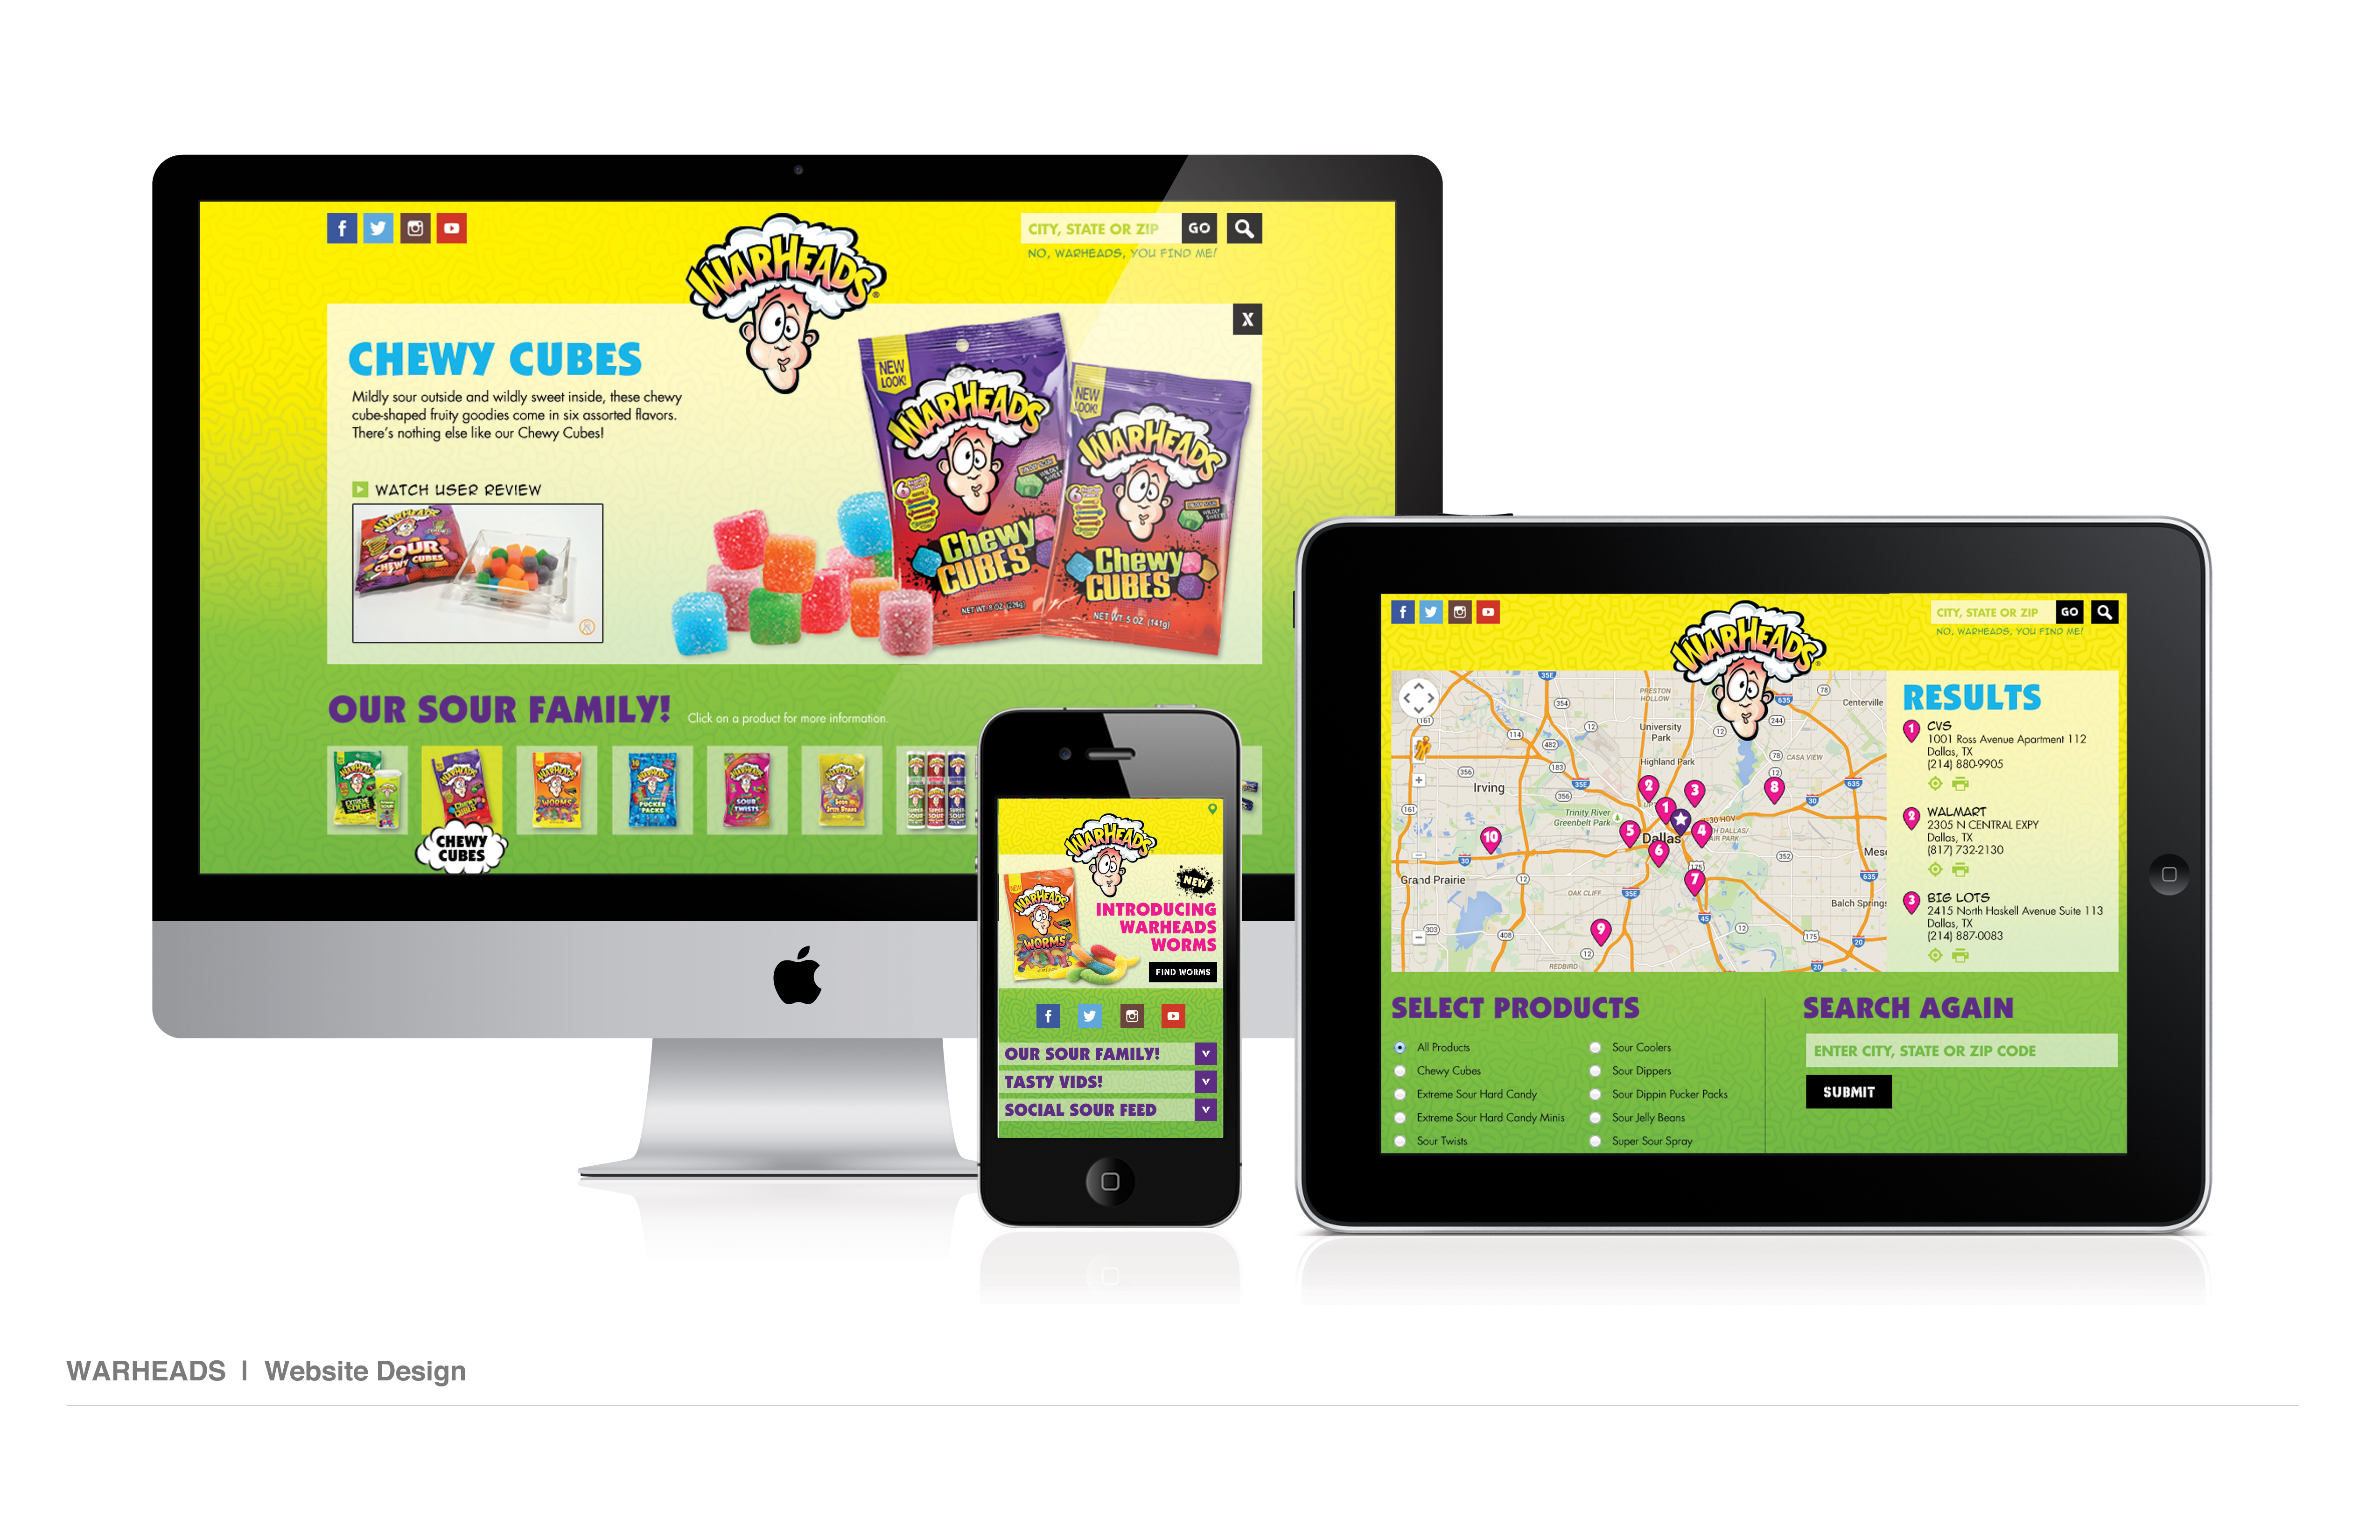 Warheads Website